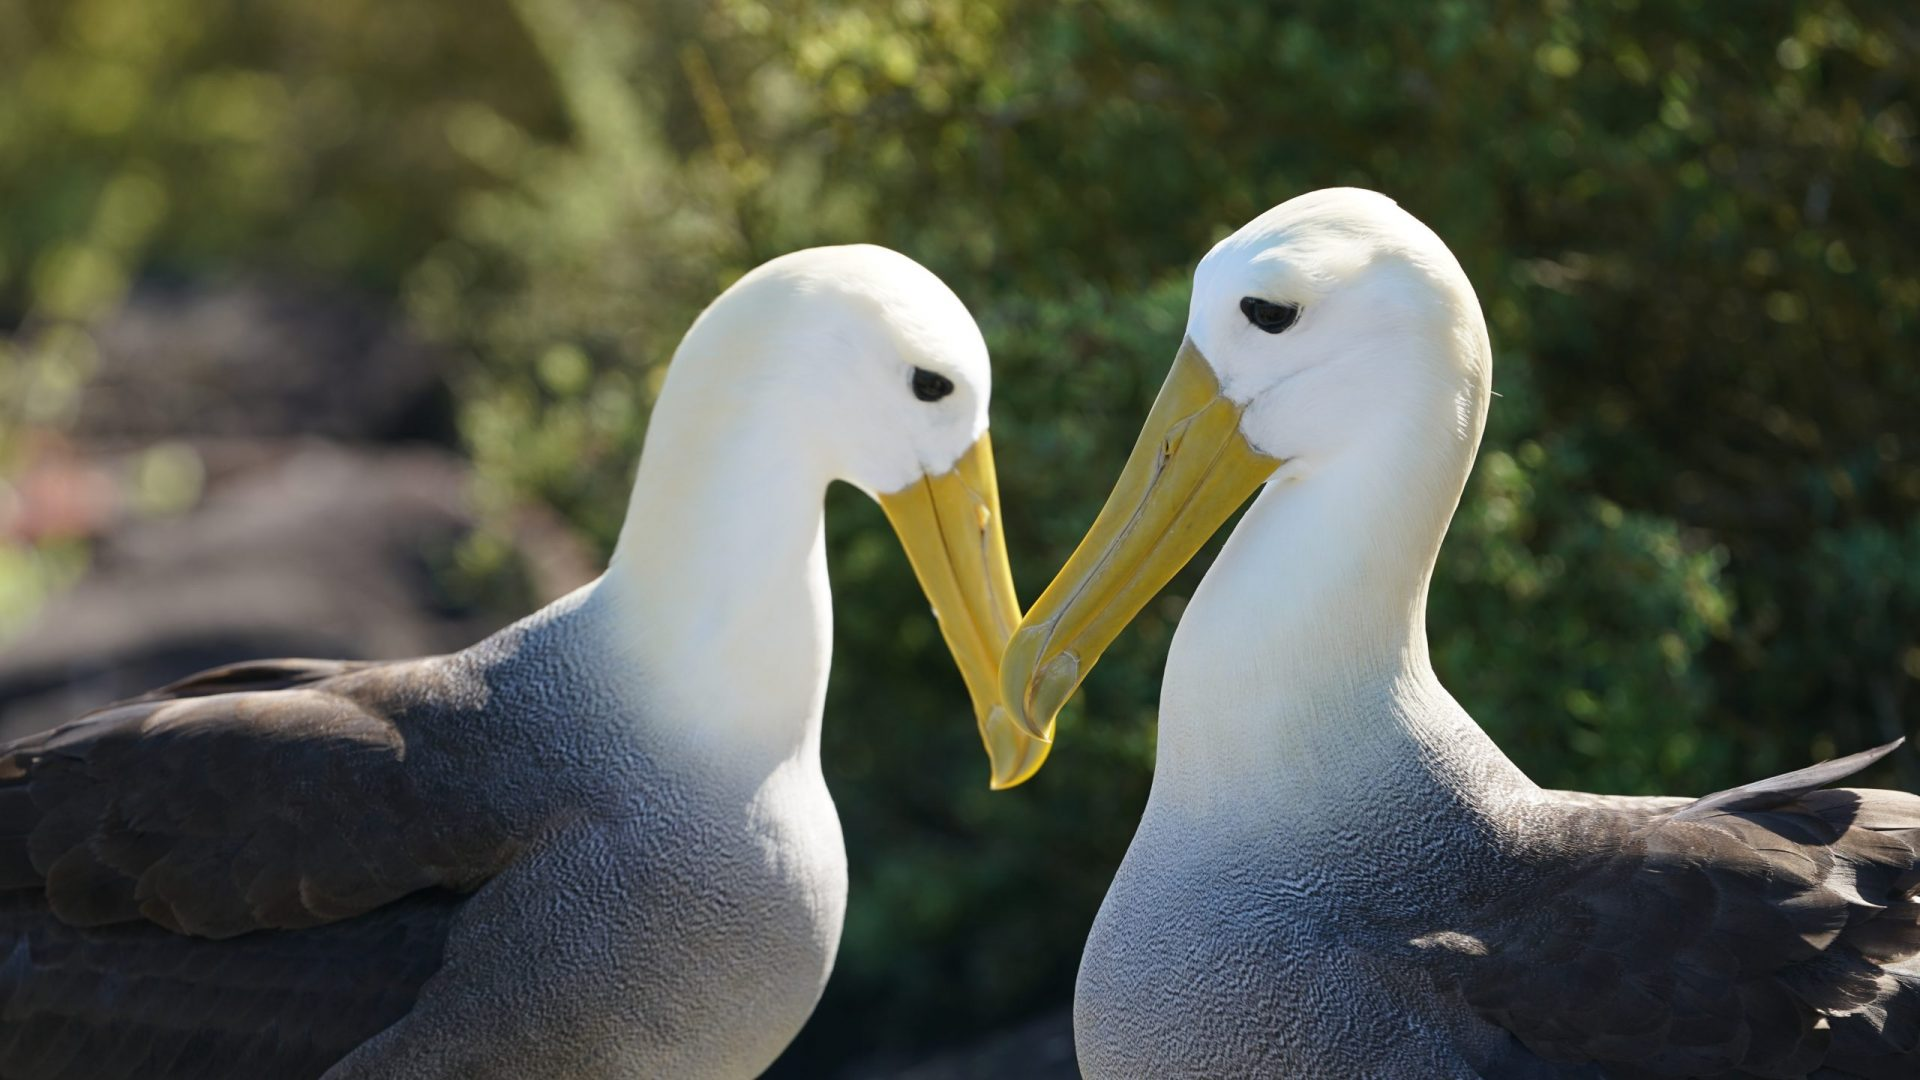 2 Albatross touching beaks with an energy of kindness